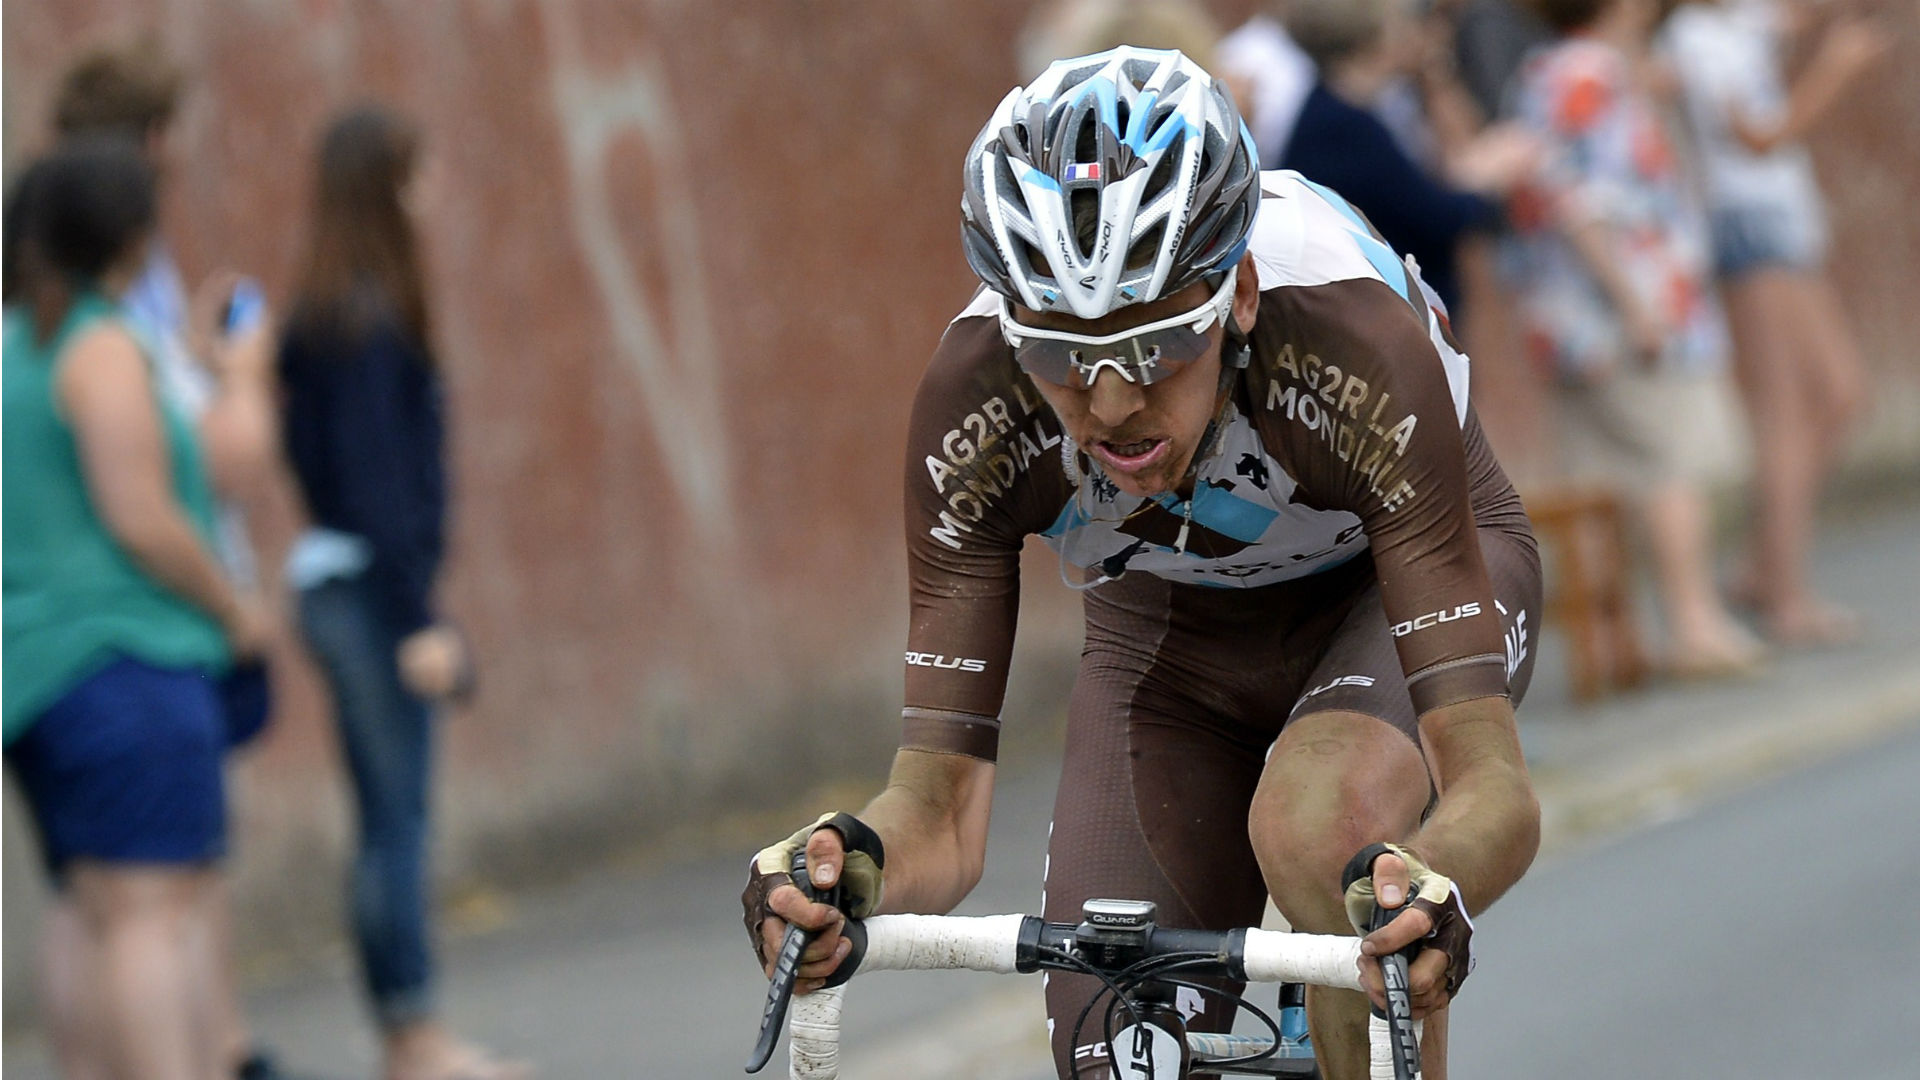 RomainBardet - Cropped